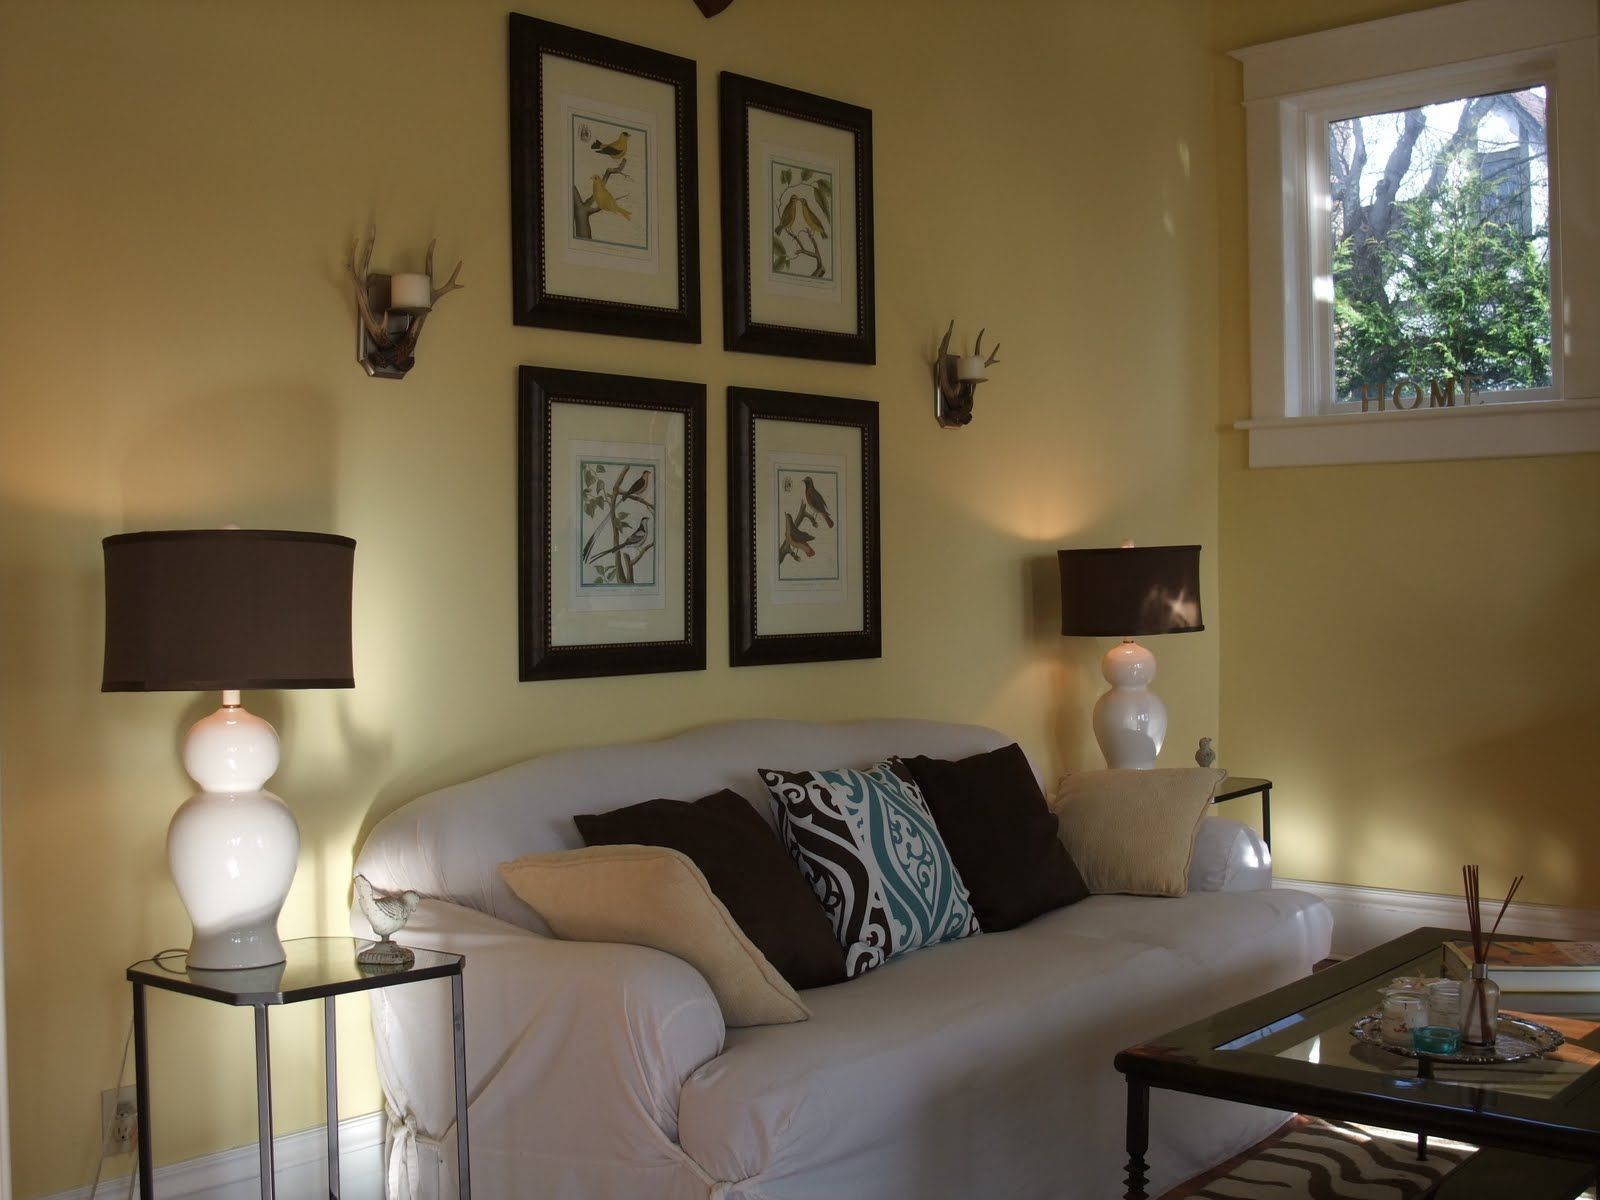 Beige Paint Colors For Low Light Rooms The Green Room Interiors Chattanooga Tn